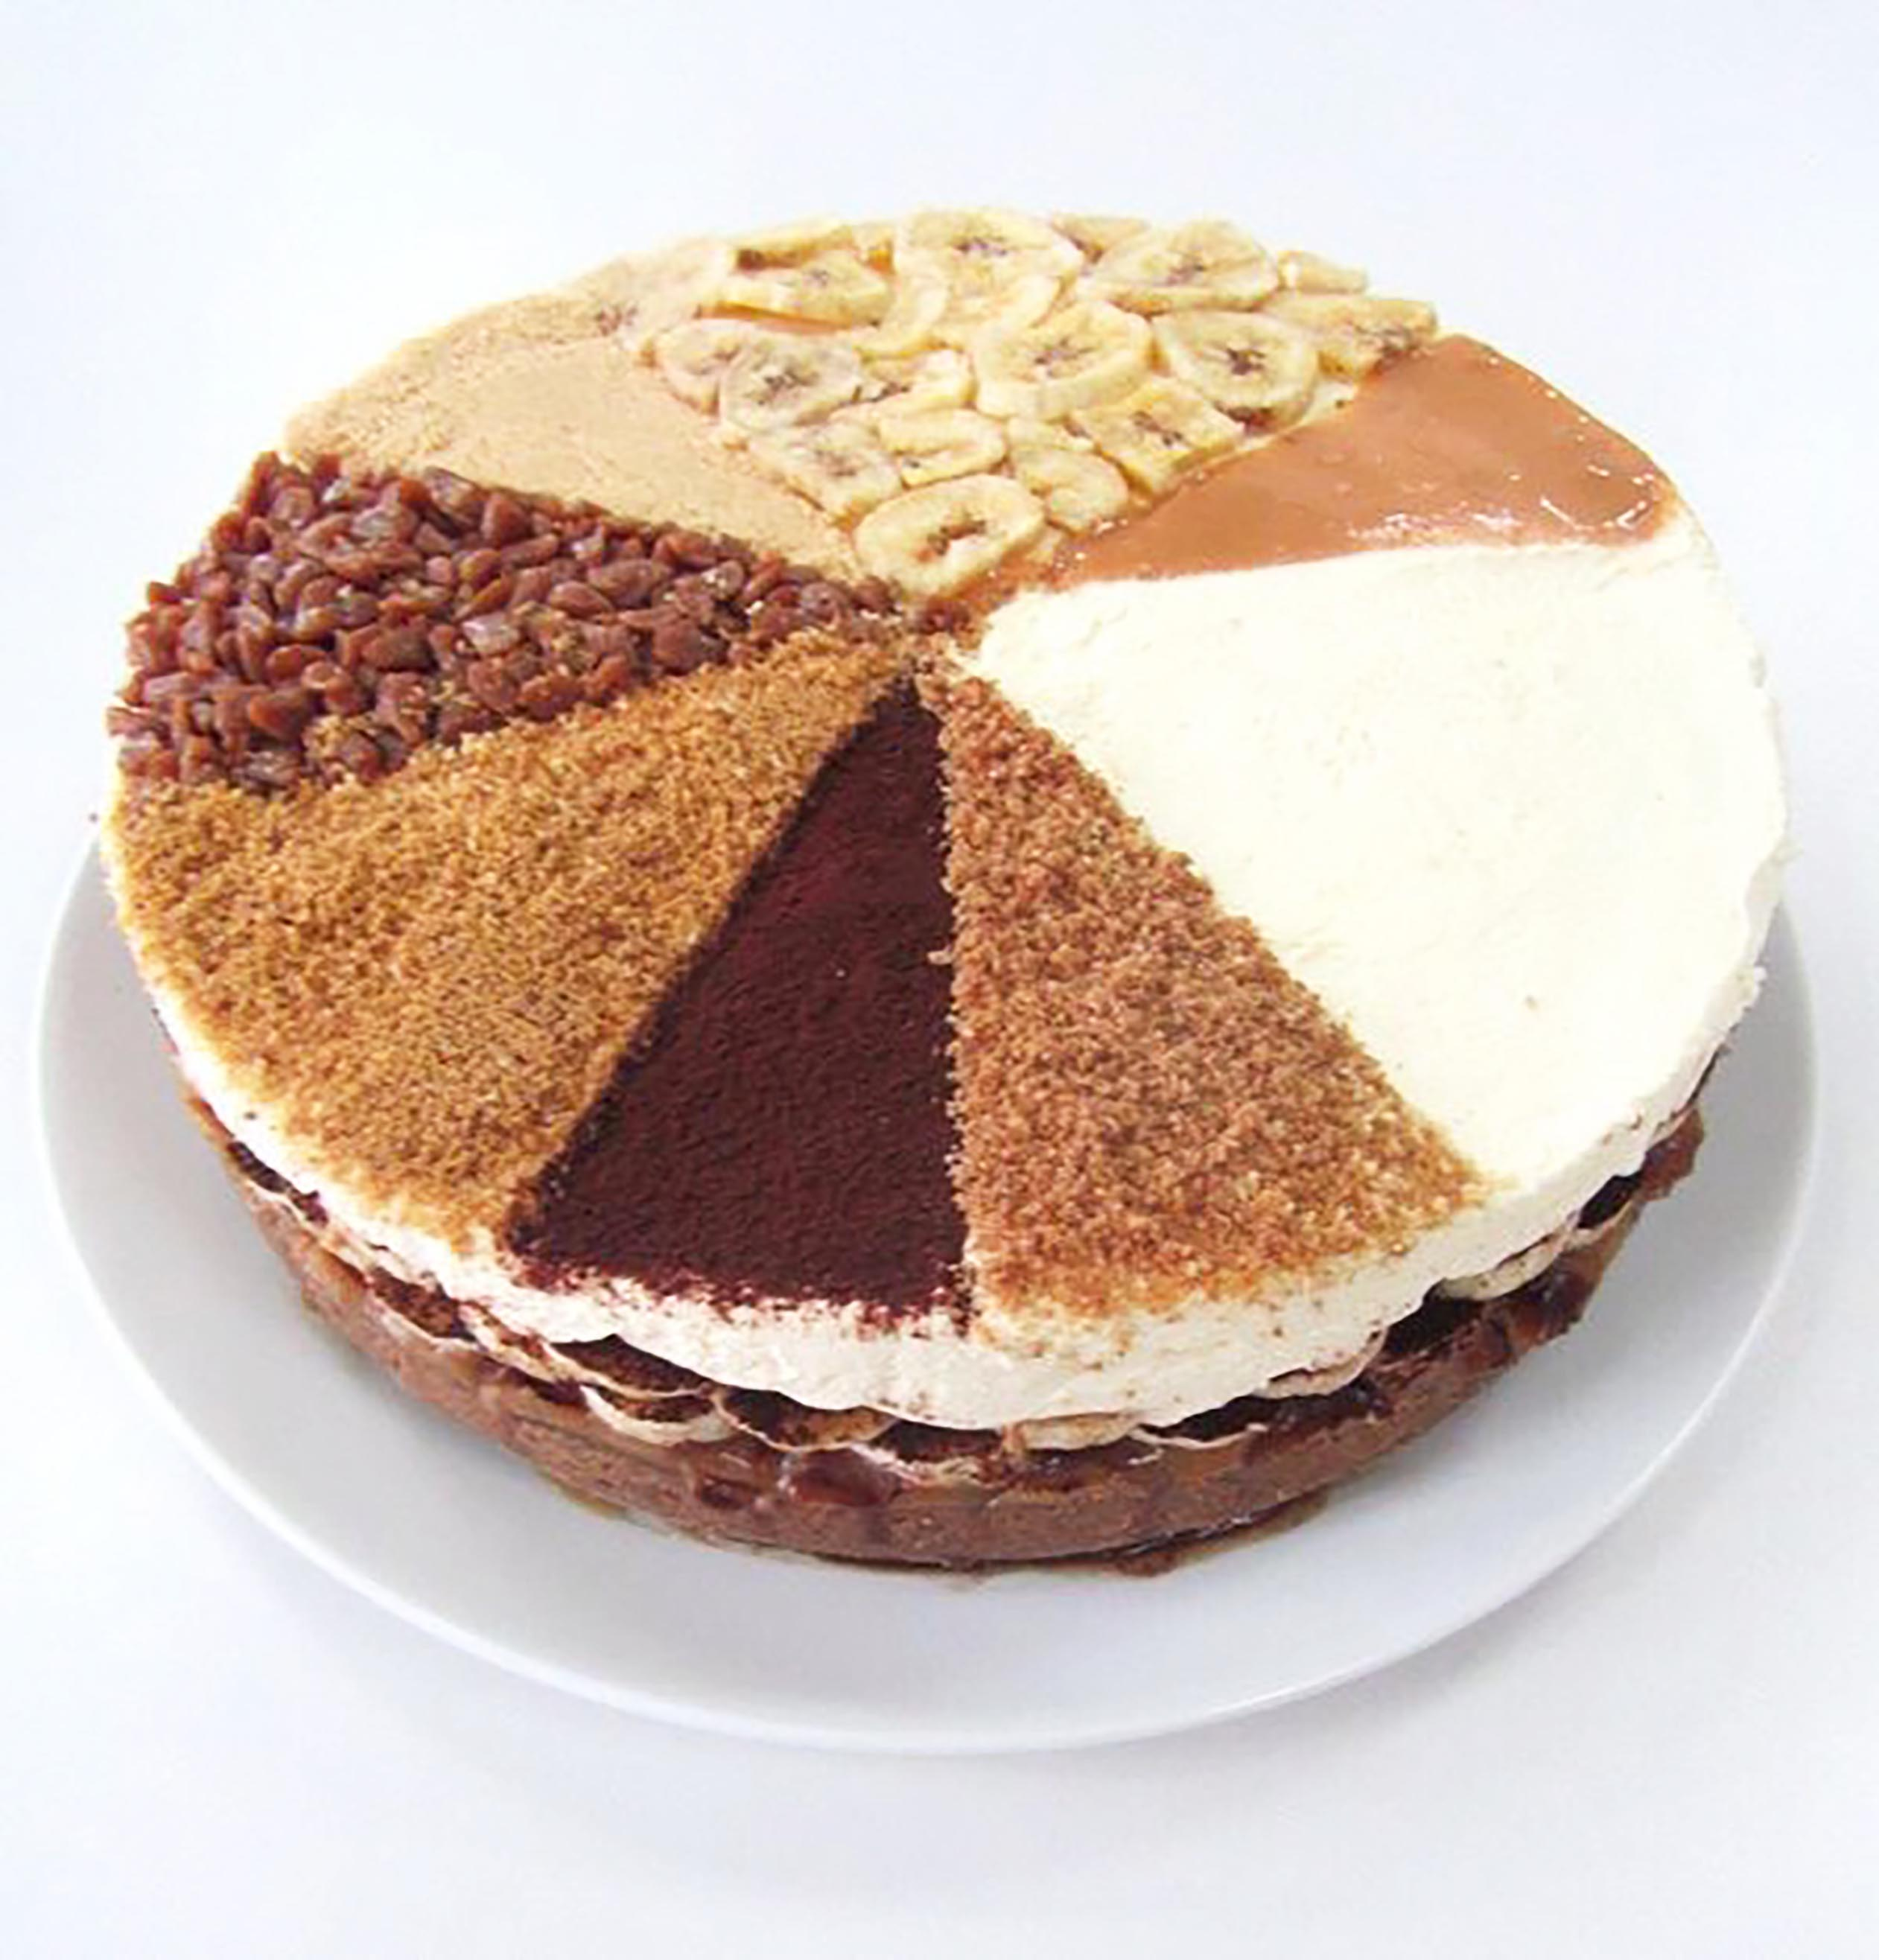 Banoffee pie chart frances quinn my banoffee pie chart is a play on the dish and day today is national pi day the annual celebration of the mathematical constant and in my case formula of geenschuldenfo Choice Image